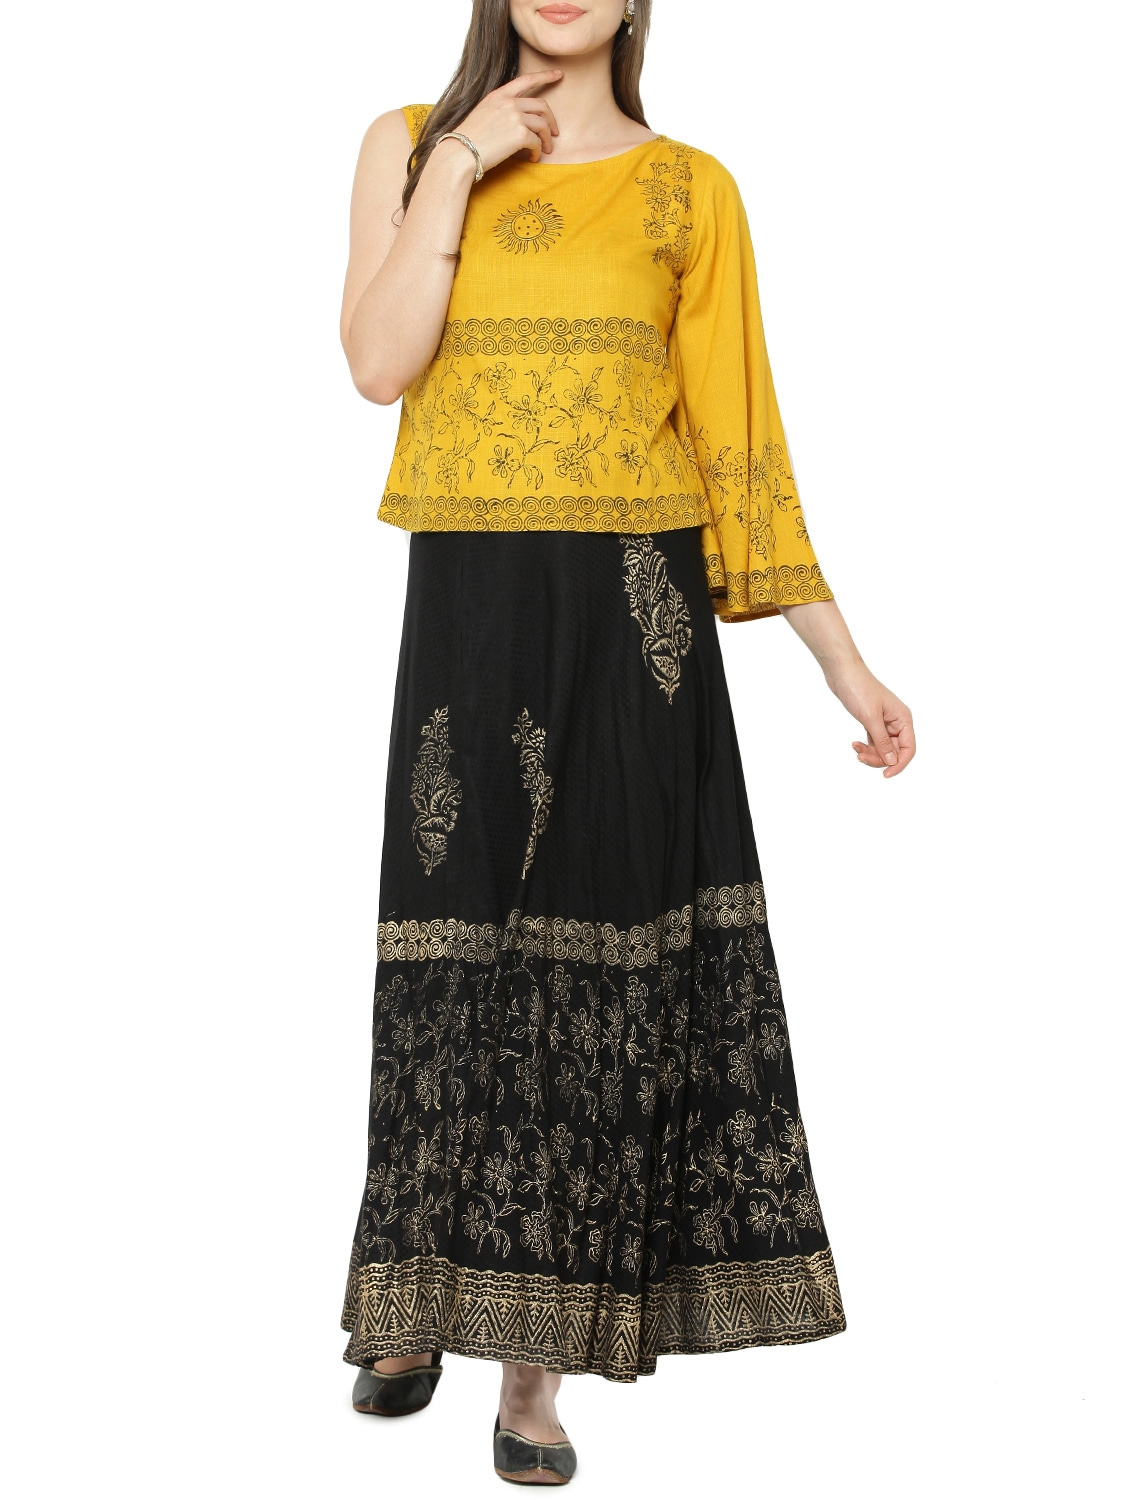 48a2d7c0228f2e Buy Printed Single Sleeved Top With Skirt Set for Women from Dimpy for ₹887  at 56% off